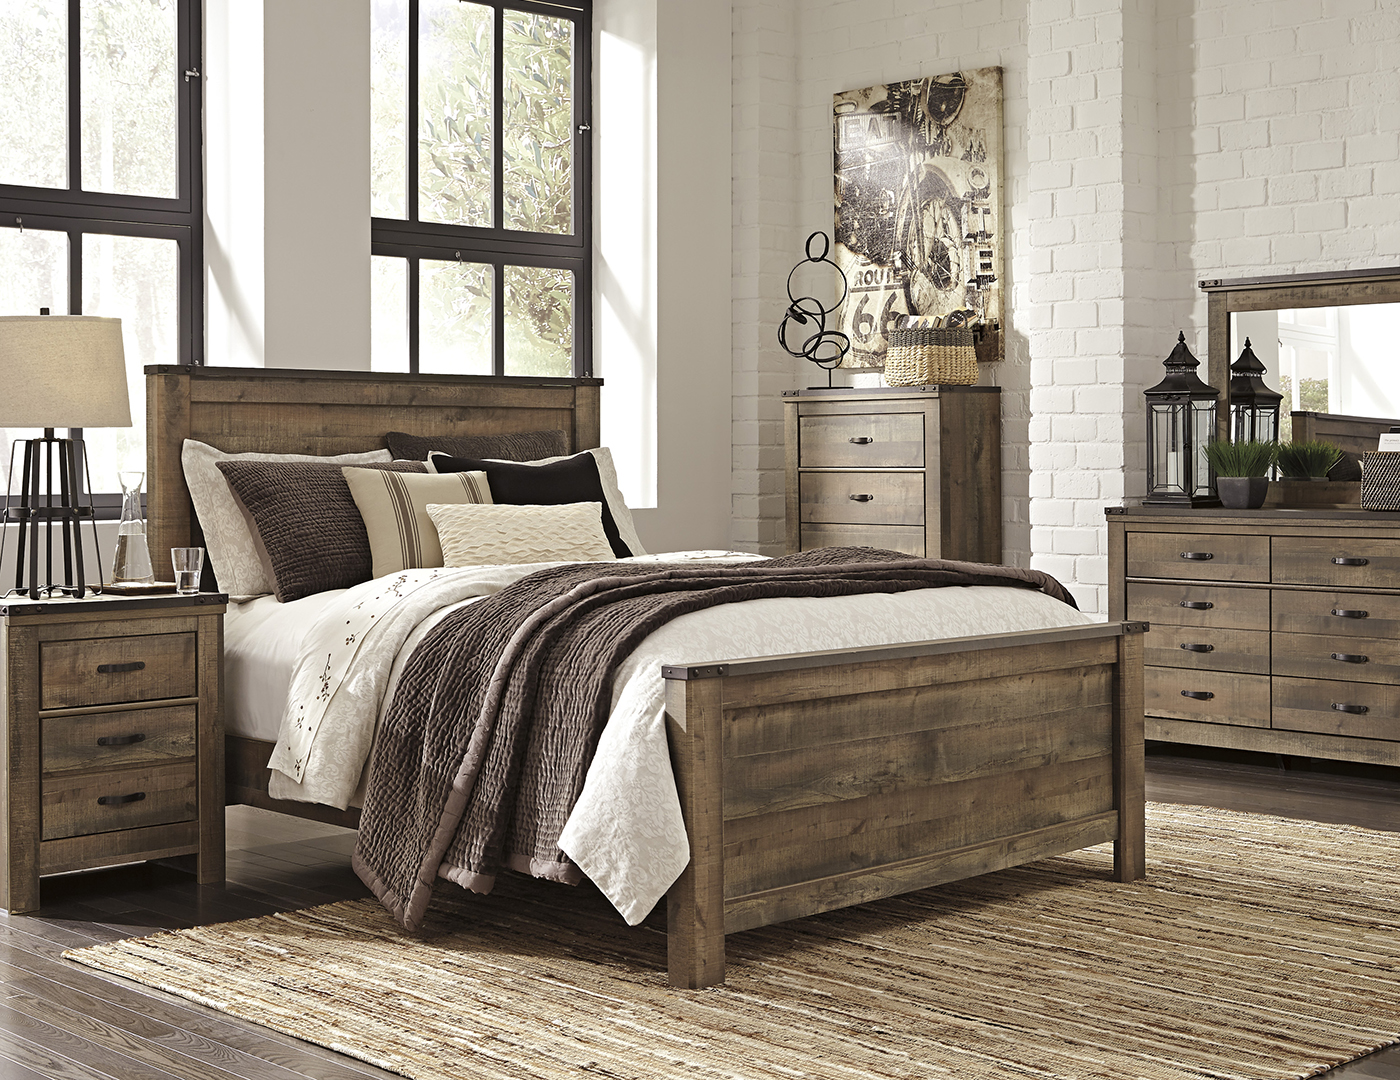 trinell 5 pc king bedroom set steinhafels 14299 | 4994kpk69